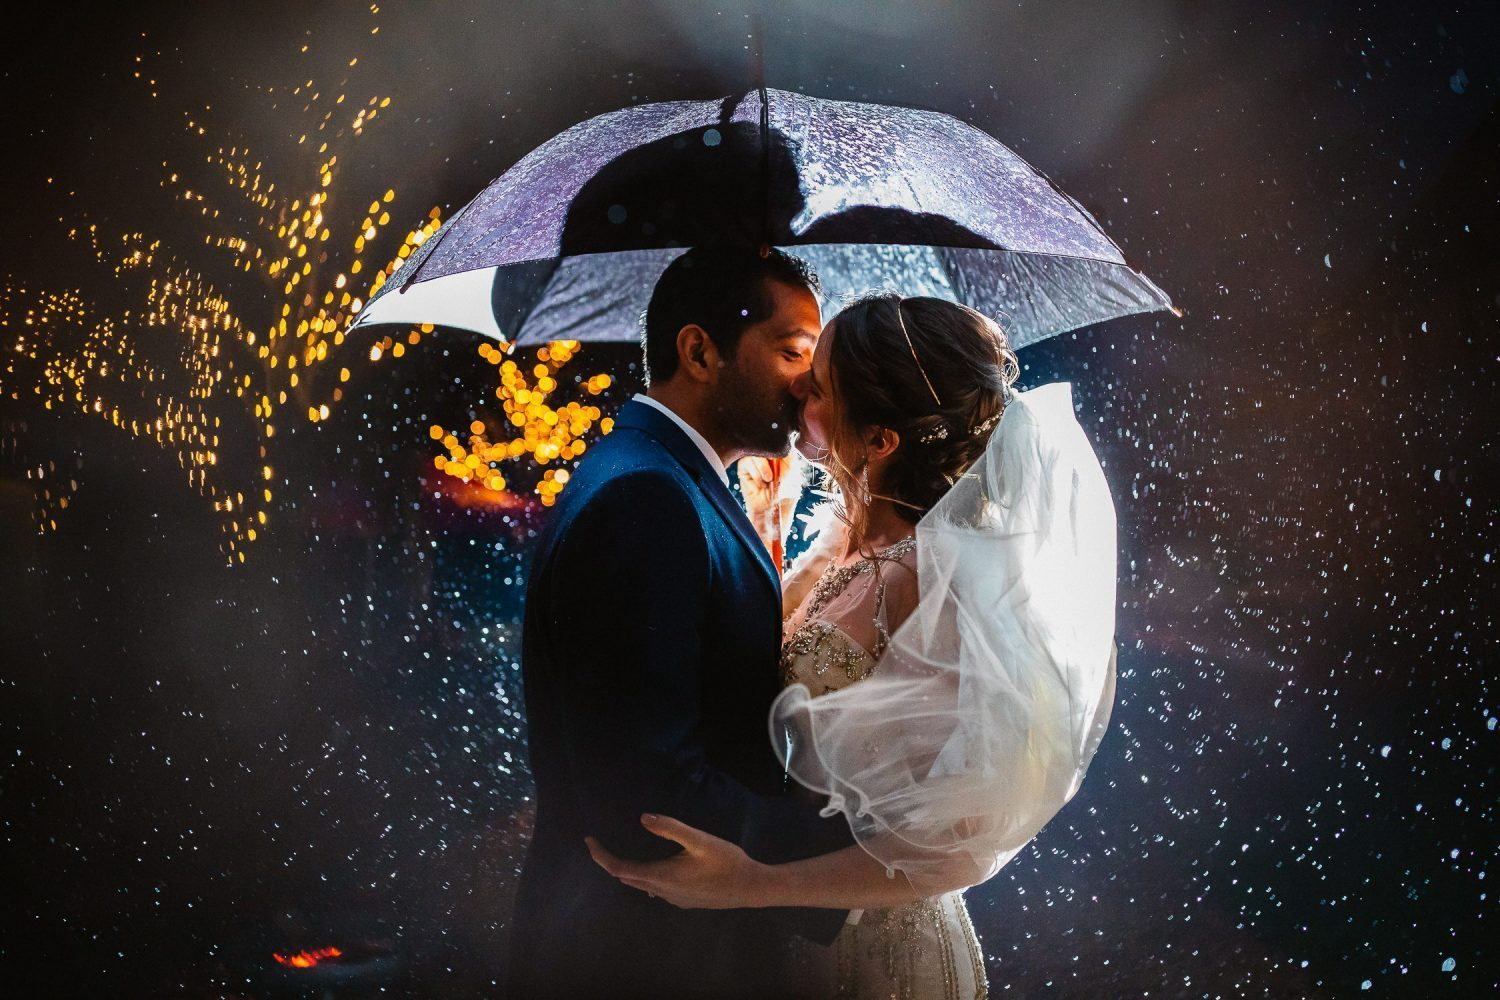 Dancing in the rain wedding day